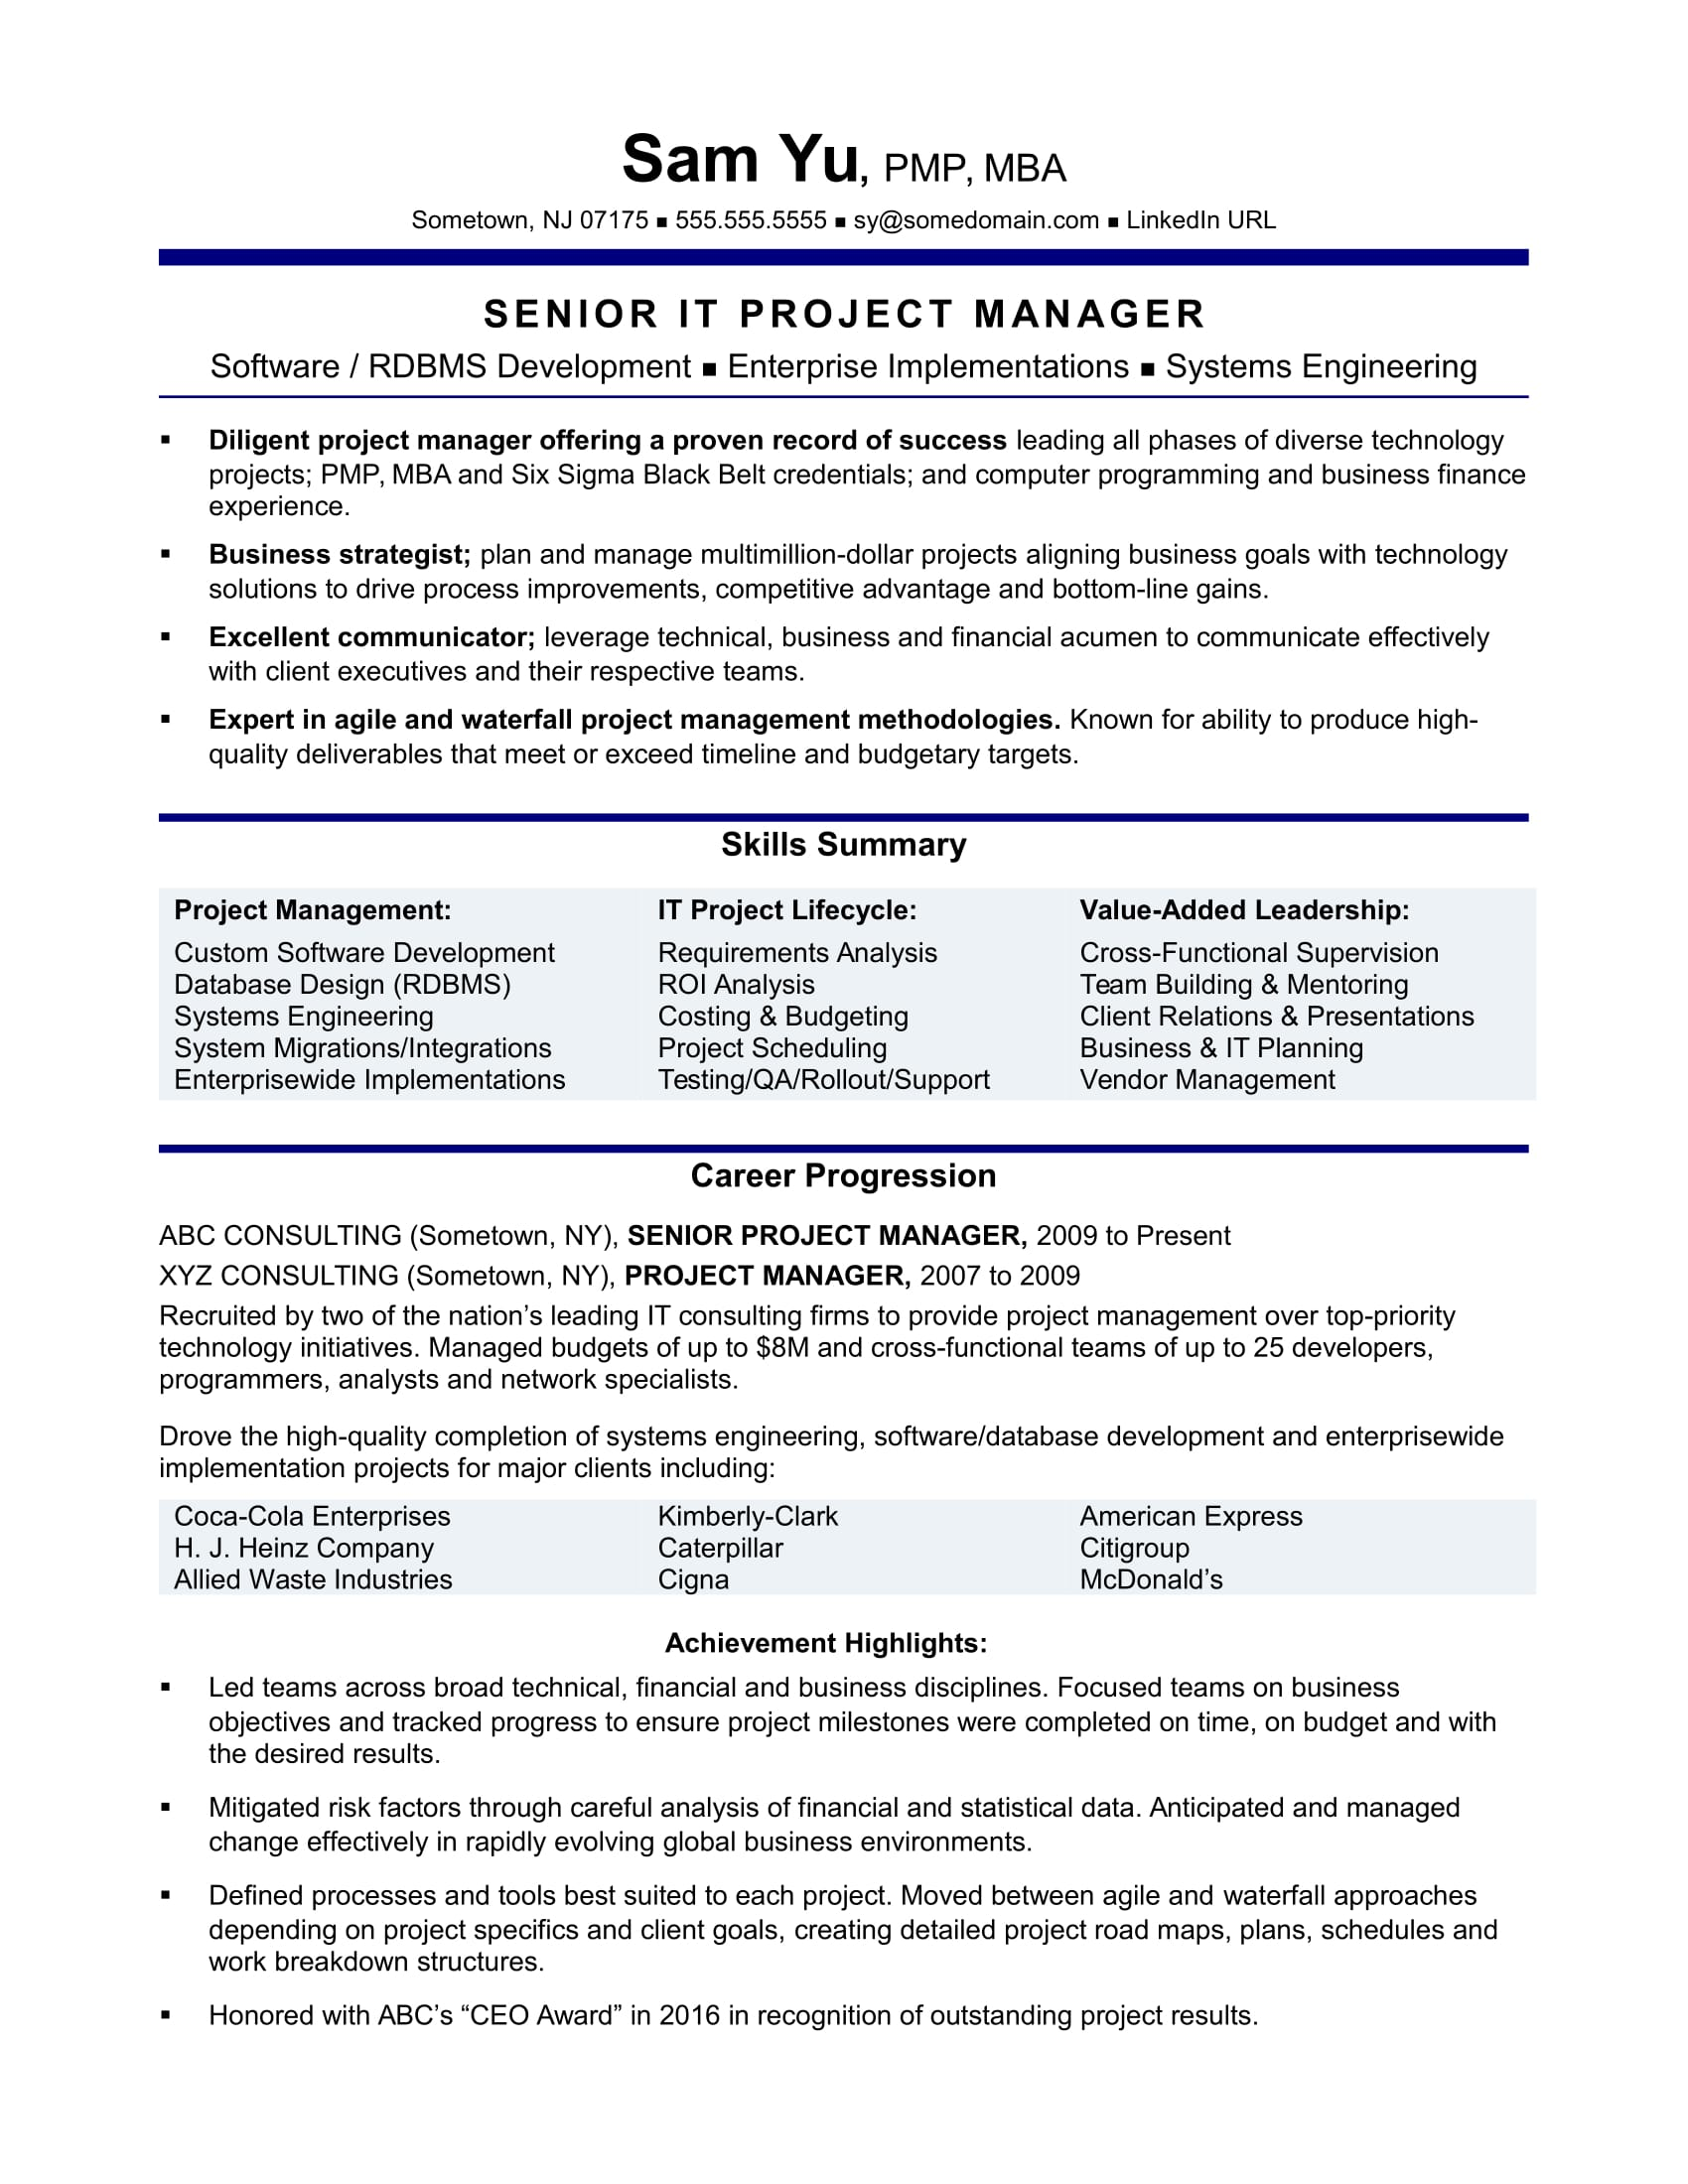 Experienced IT Project Manager Resume Sample  Managing Director Resume